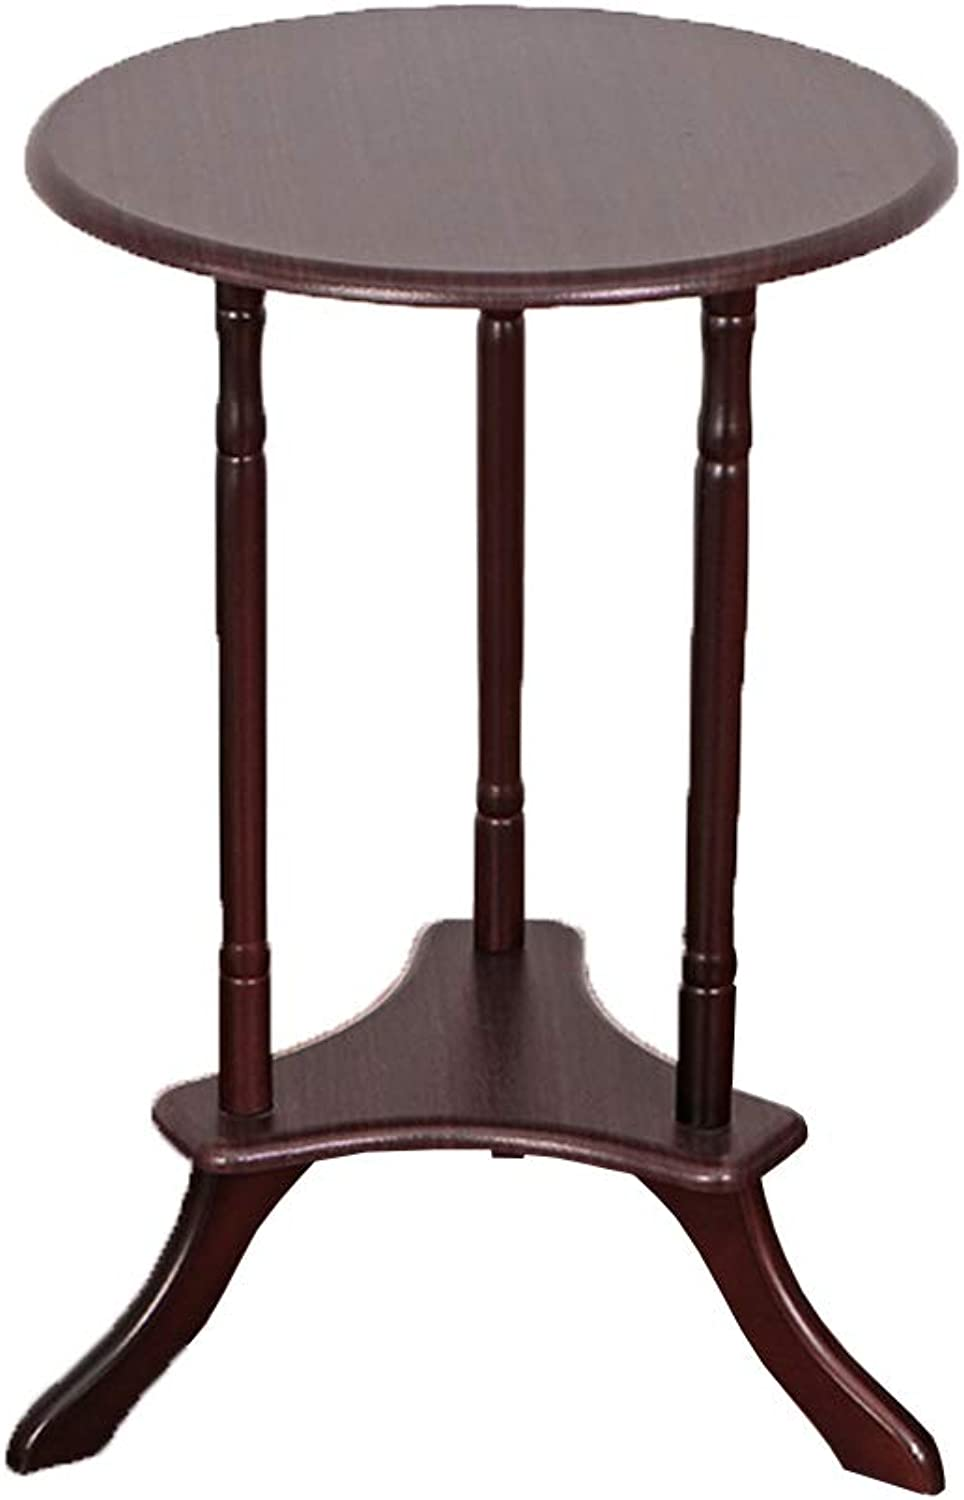 LVZAIXI - Wooden Table end Bedside Table - Mahogany,59h x 39.5w x 39.5d cm   23.6h x 15.7w x 15.7d inches